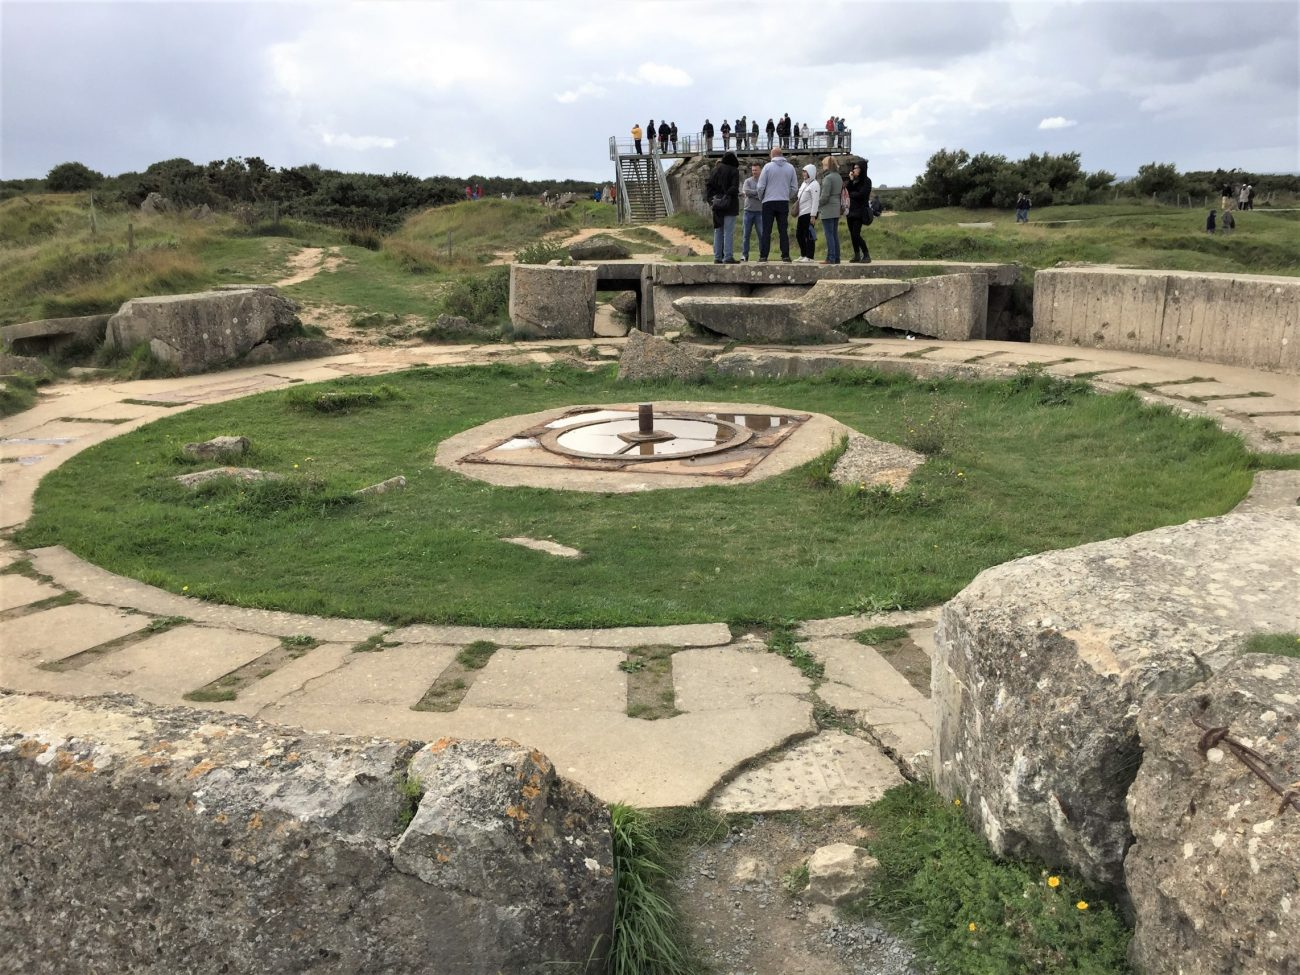 Open gun pit at Pointe du Hoc (Photo: Sarah Sundin, September 2017)